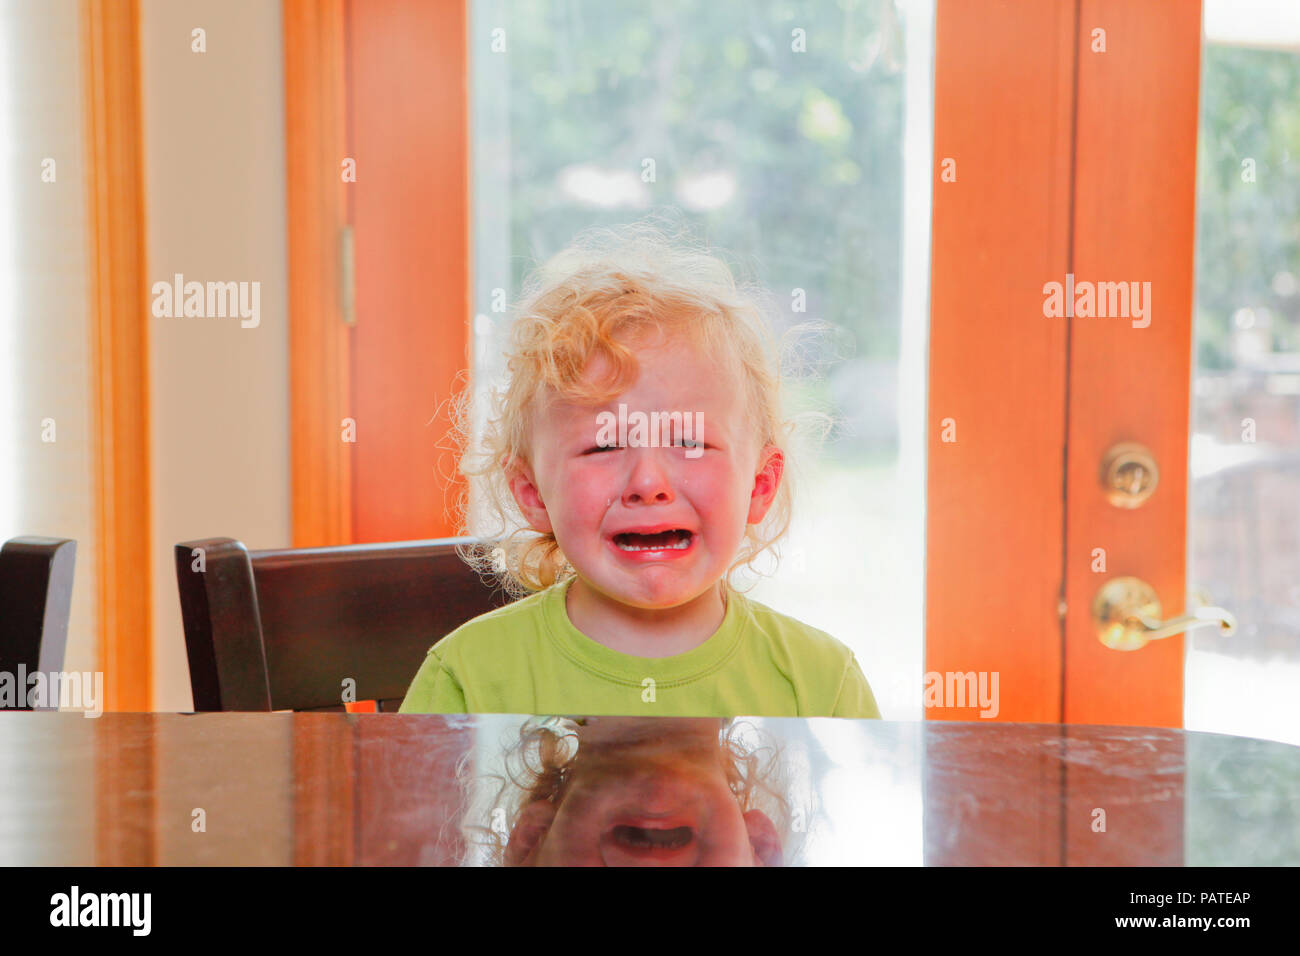 Crying Child at Kitchen counter with background area Stock Photo